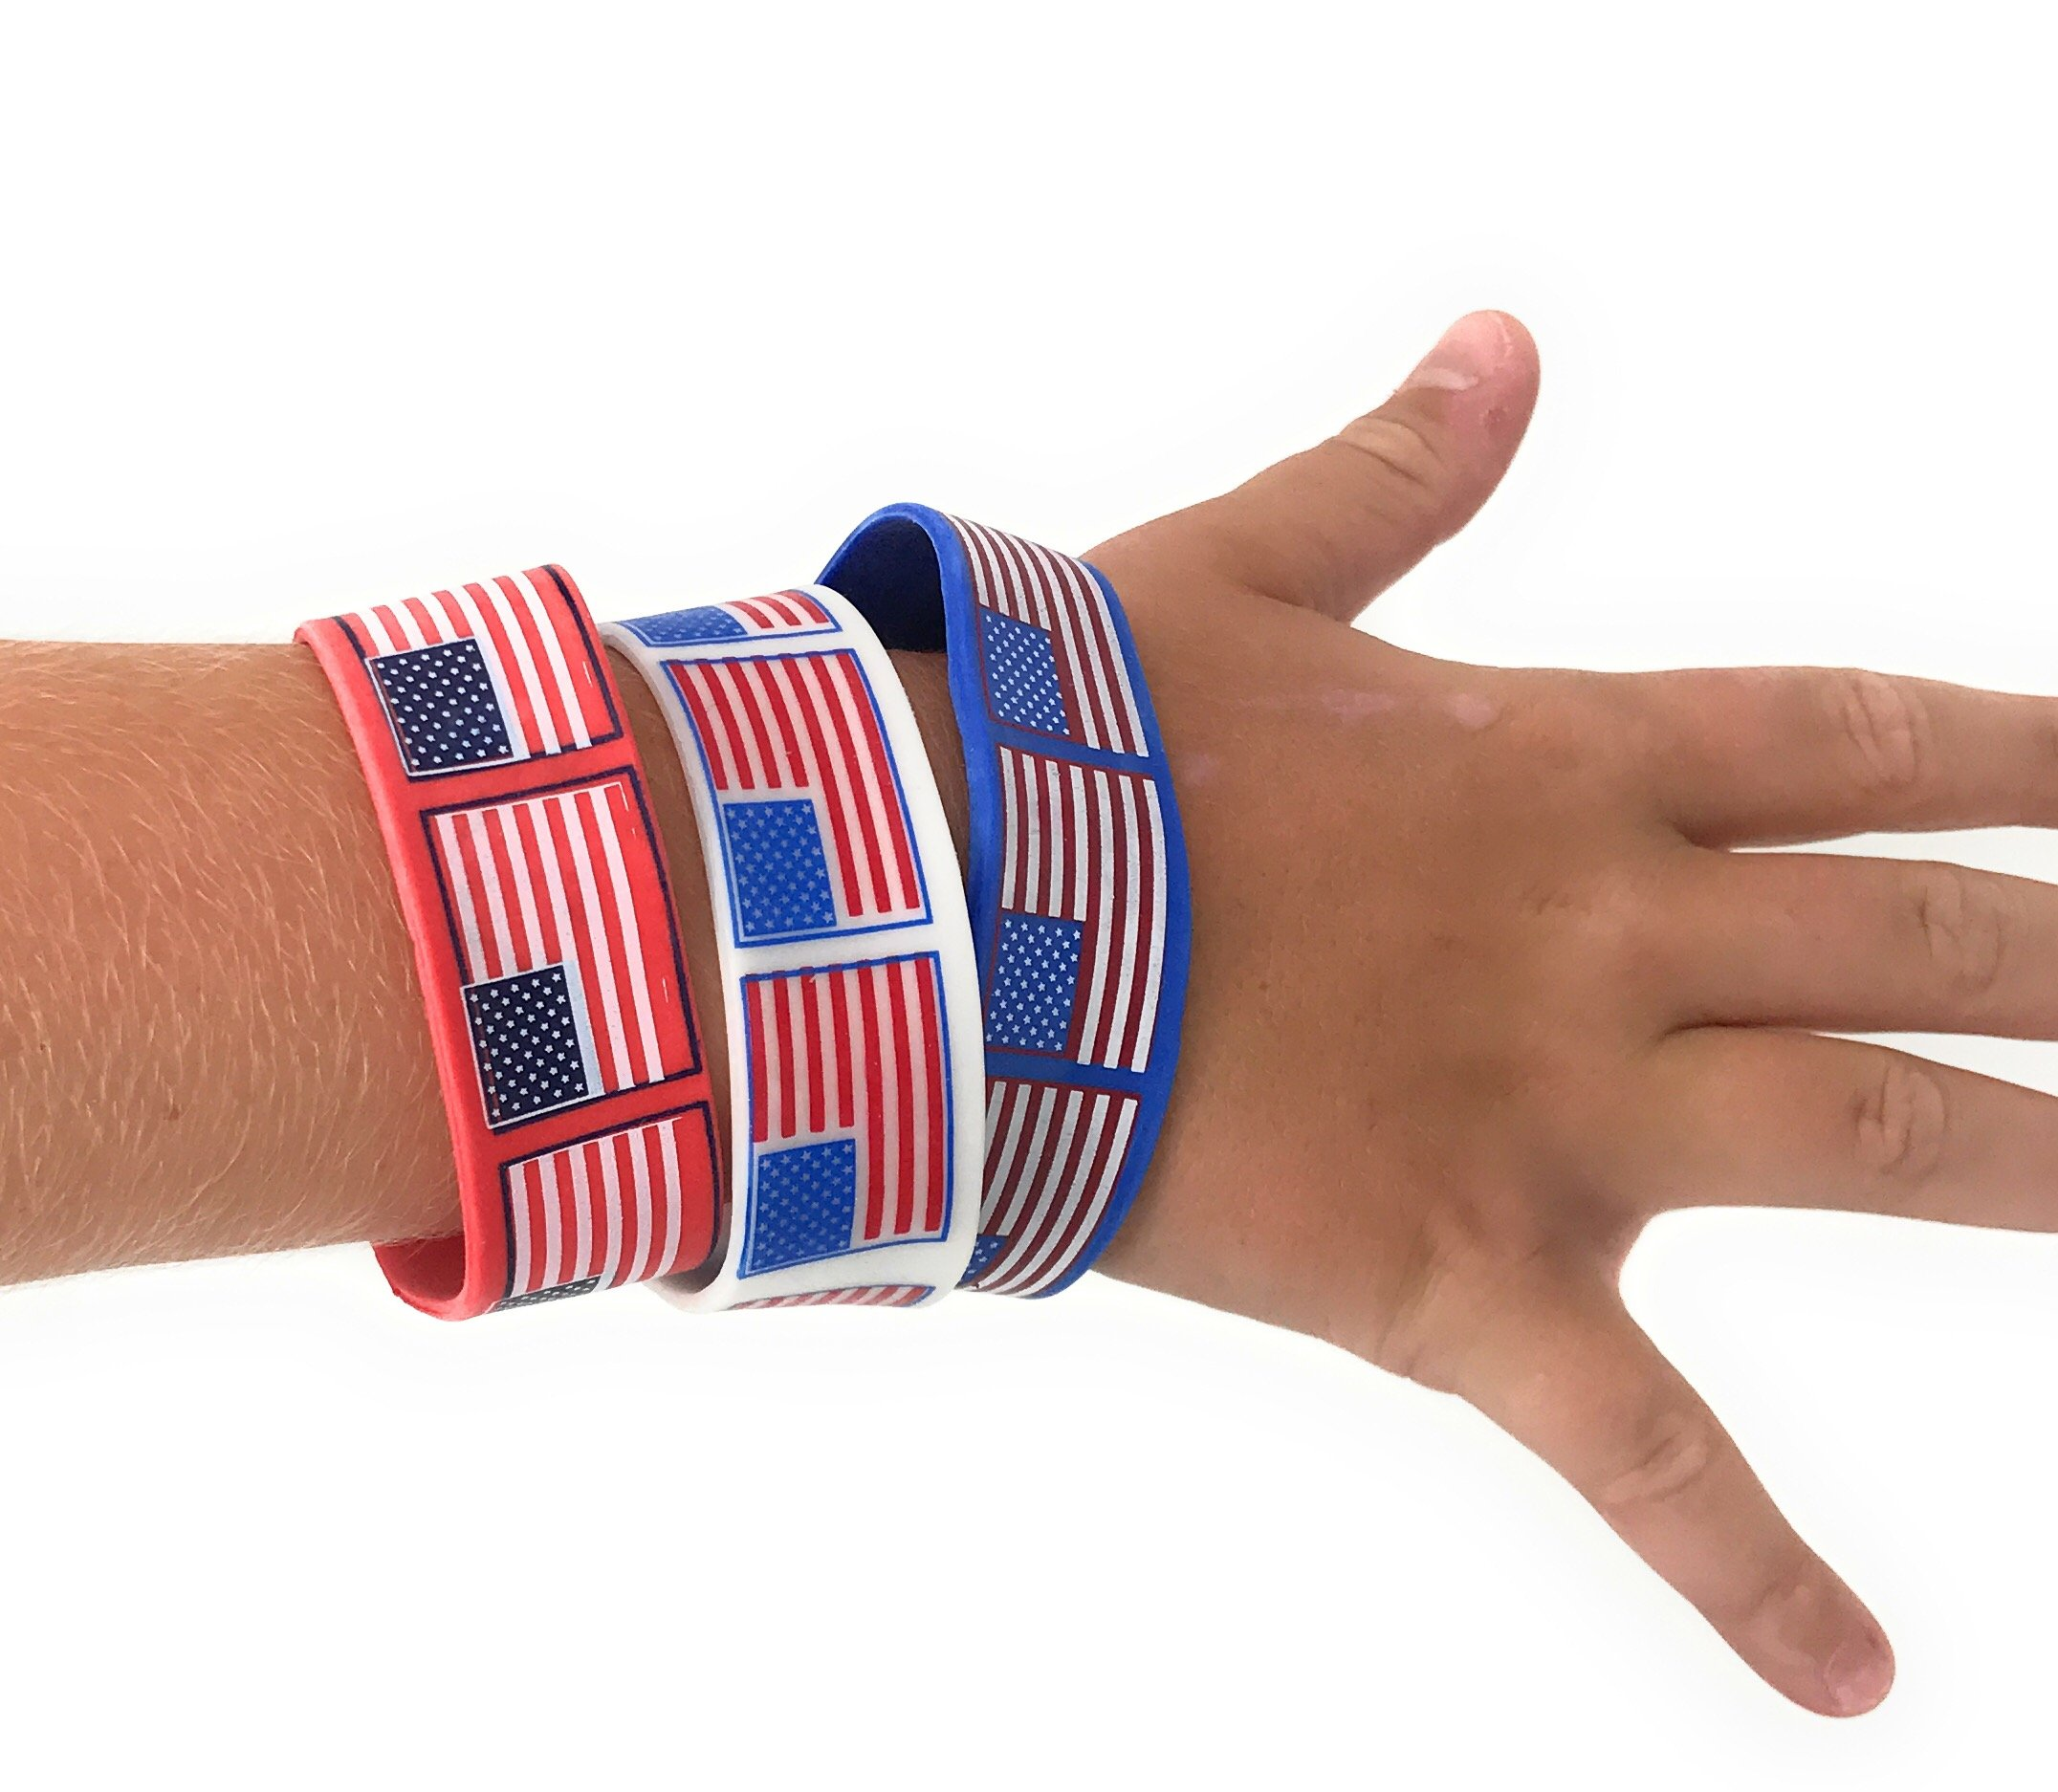 Bulk 48 Pack of American Flag Bracelets - Ideal Party Favors for Fourth of July Parades, 4th of July Parties, BBQ's, Picnics and Family Events by SVT (Image #2)